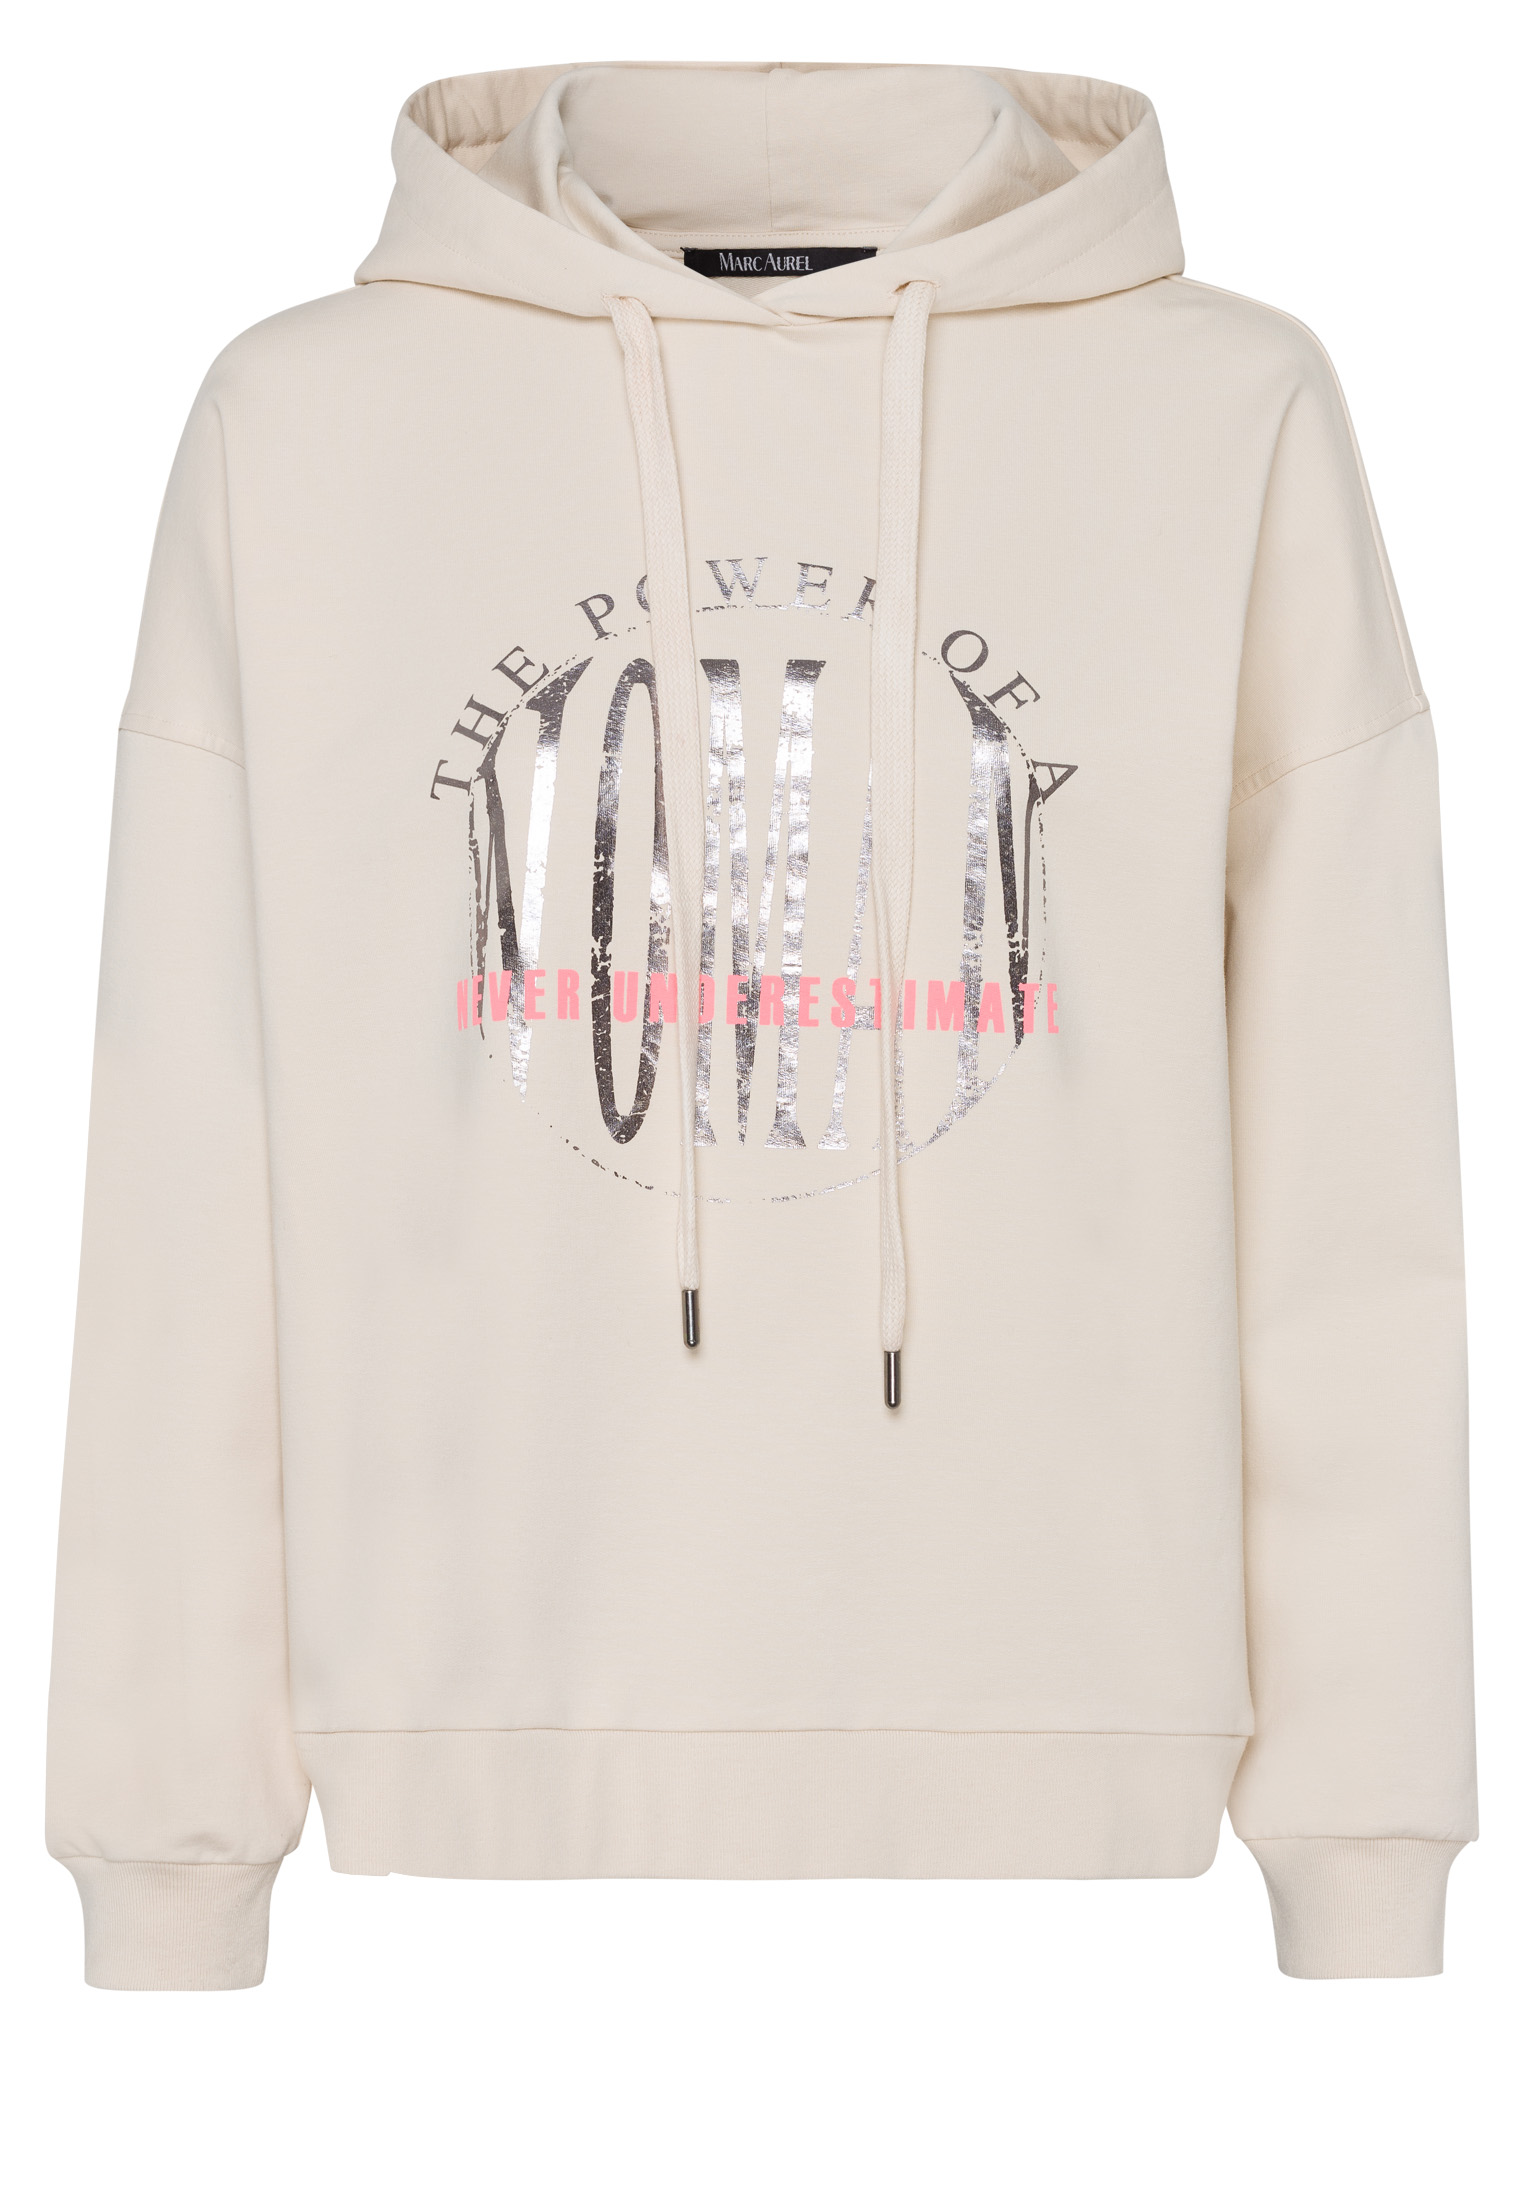 Marc Aurel Sweatshirt